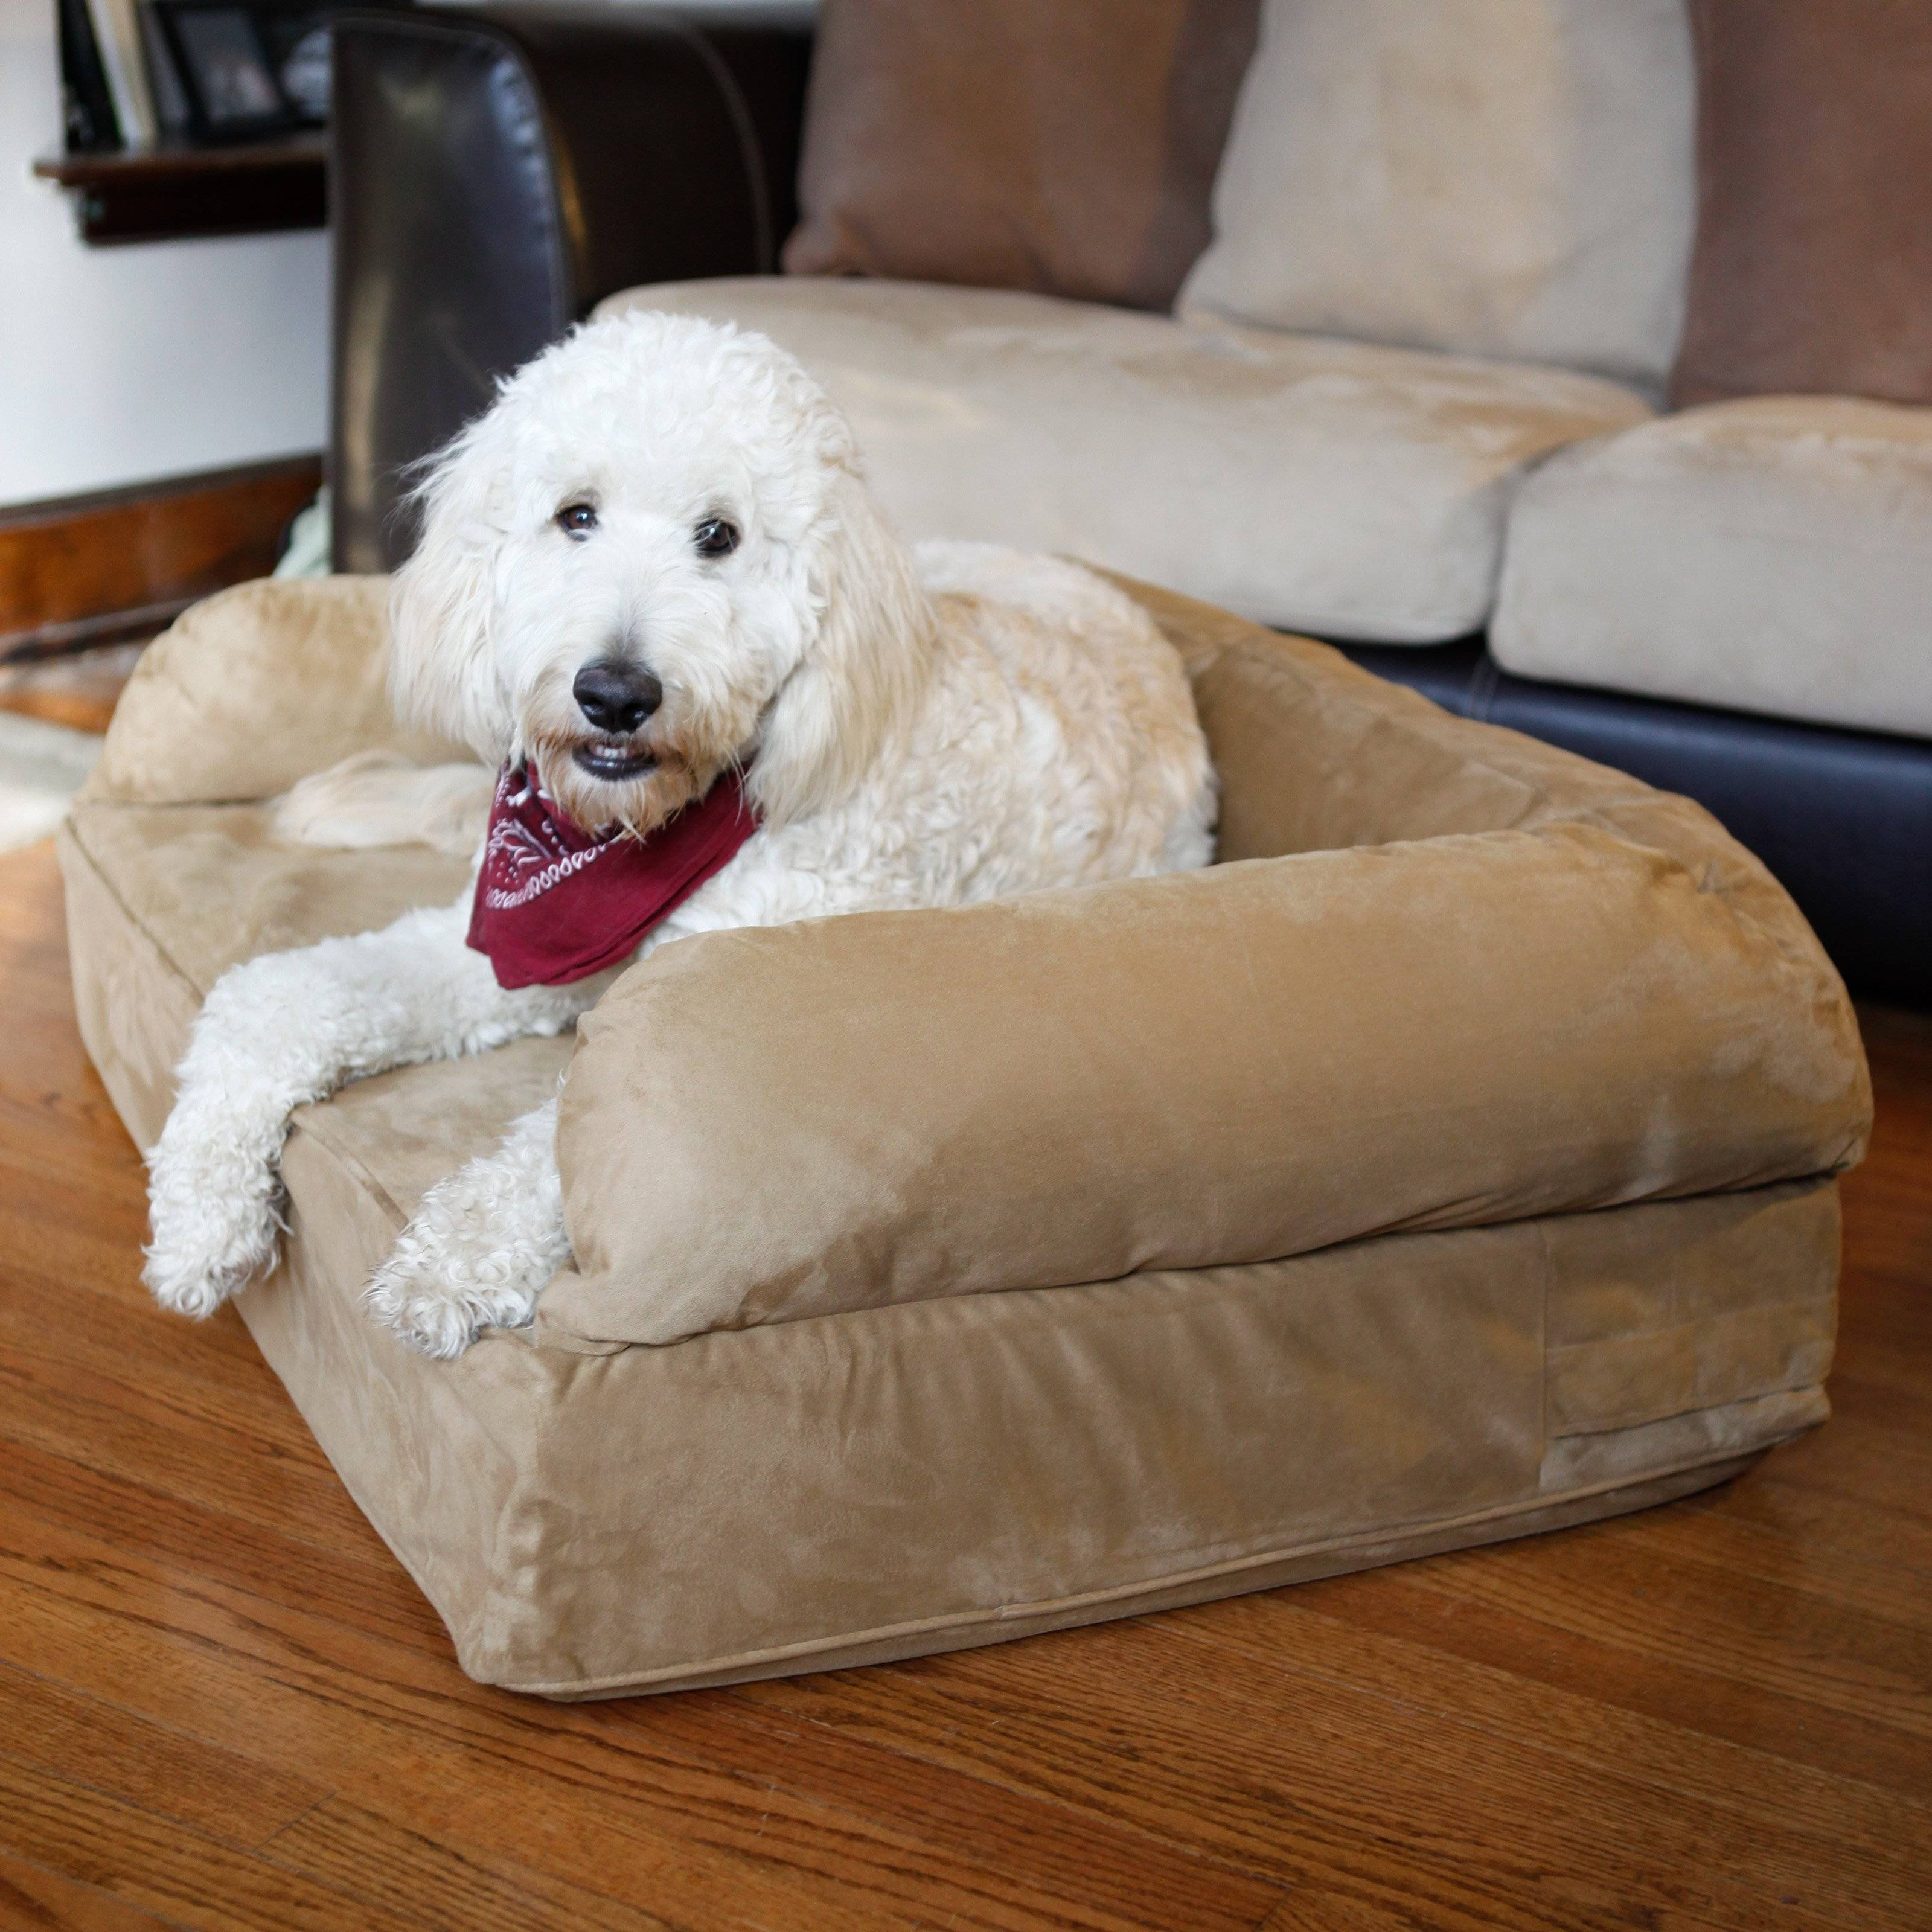 Snoozer Luxury Dog Sofa With Memory Foam | Hayneedle for Snoozer Luxury Dog Sofas (Image 7 of 15)